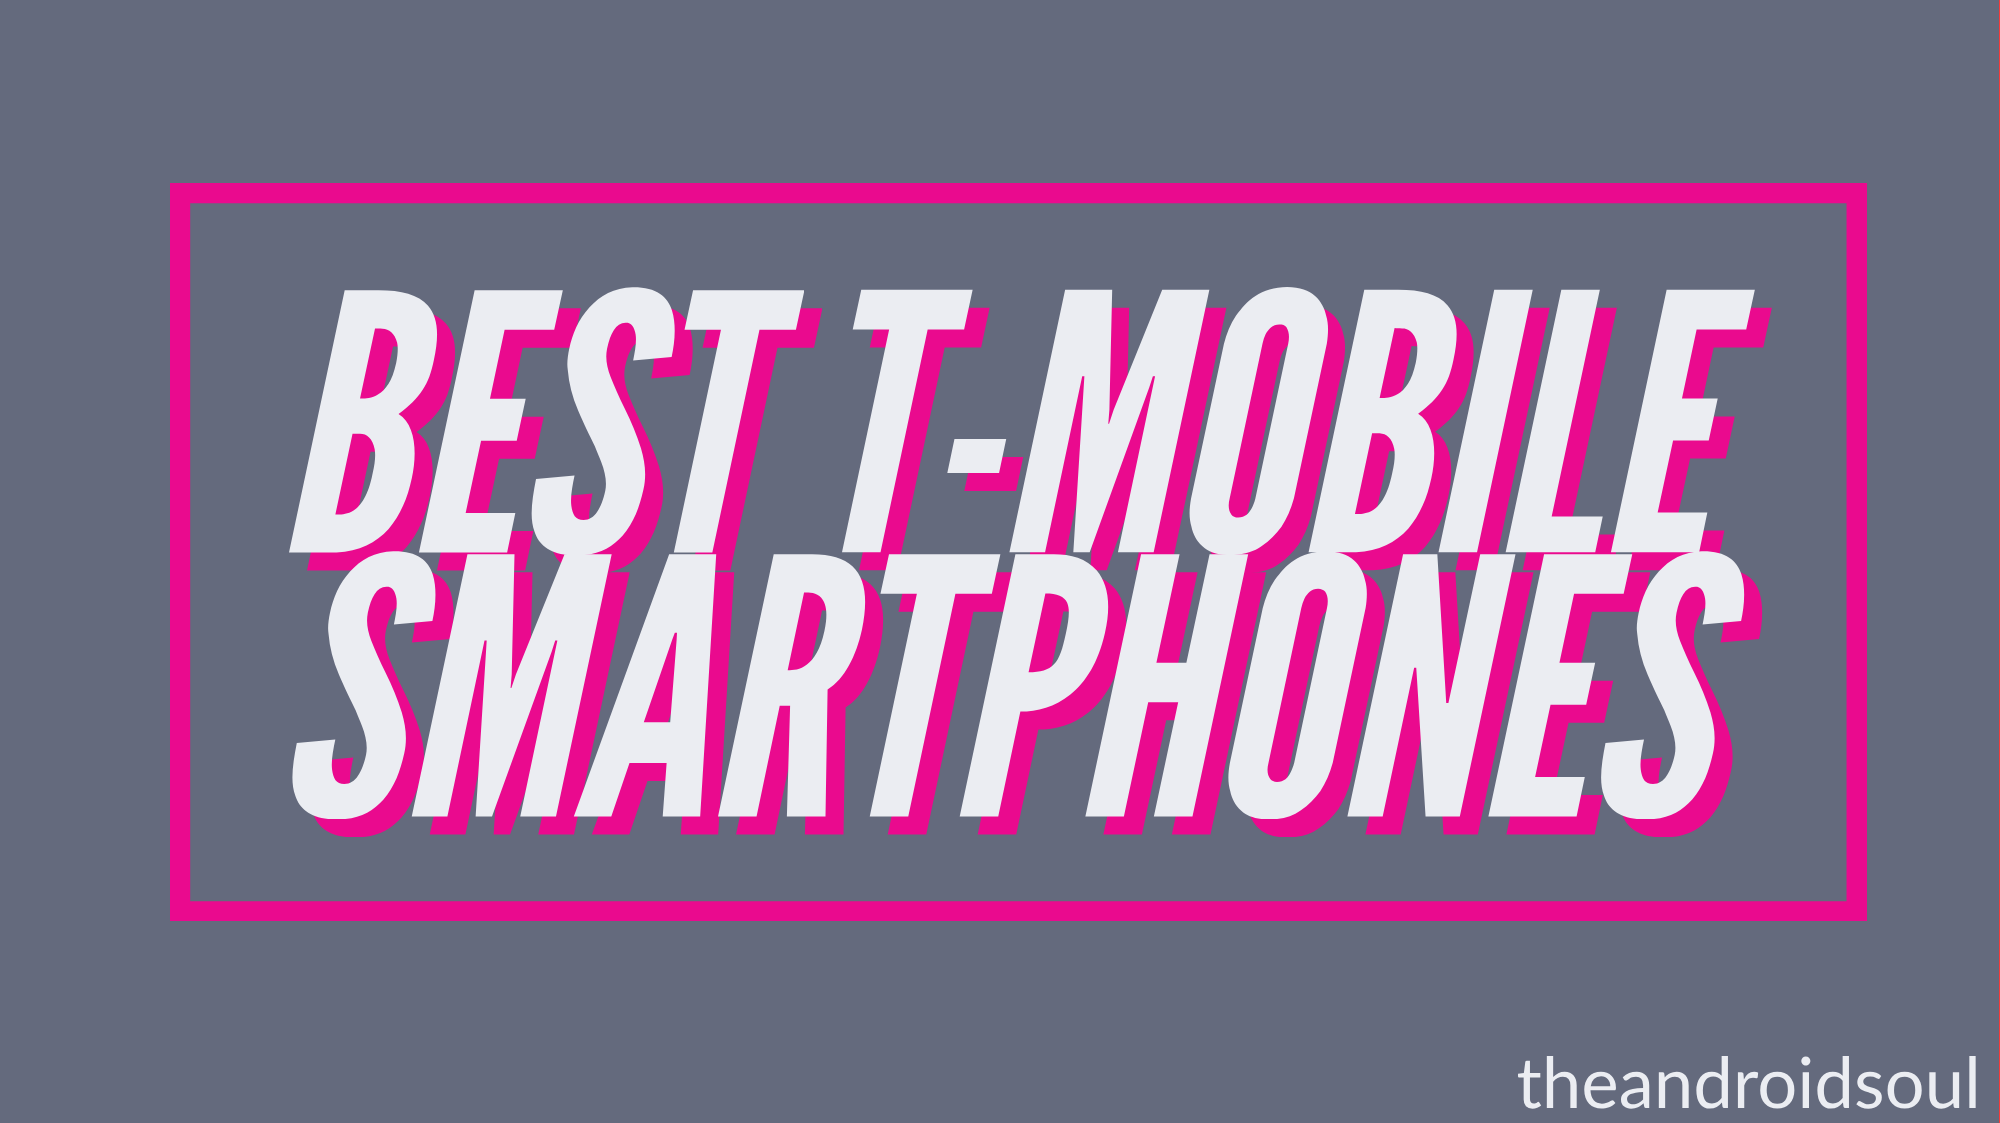 Best T-Mobile smartphones